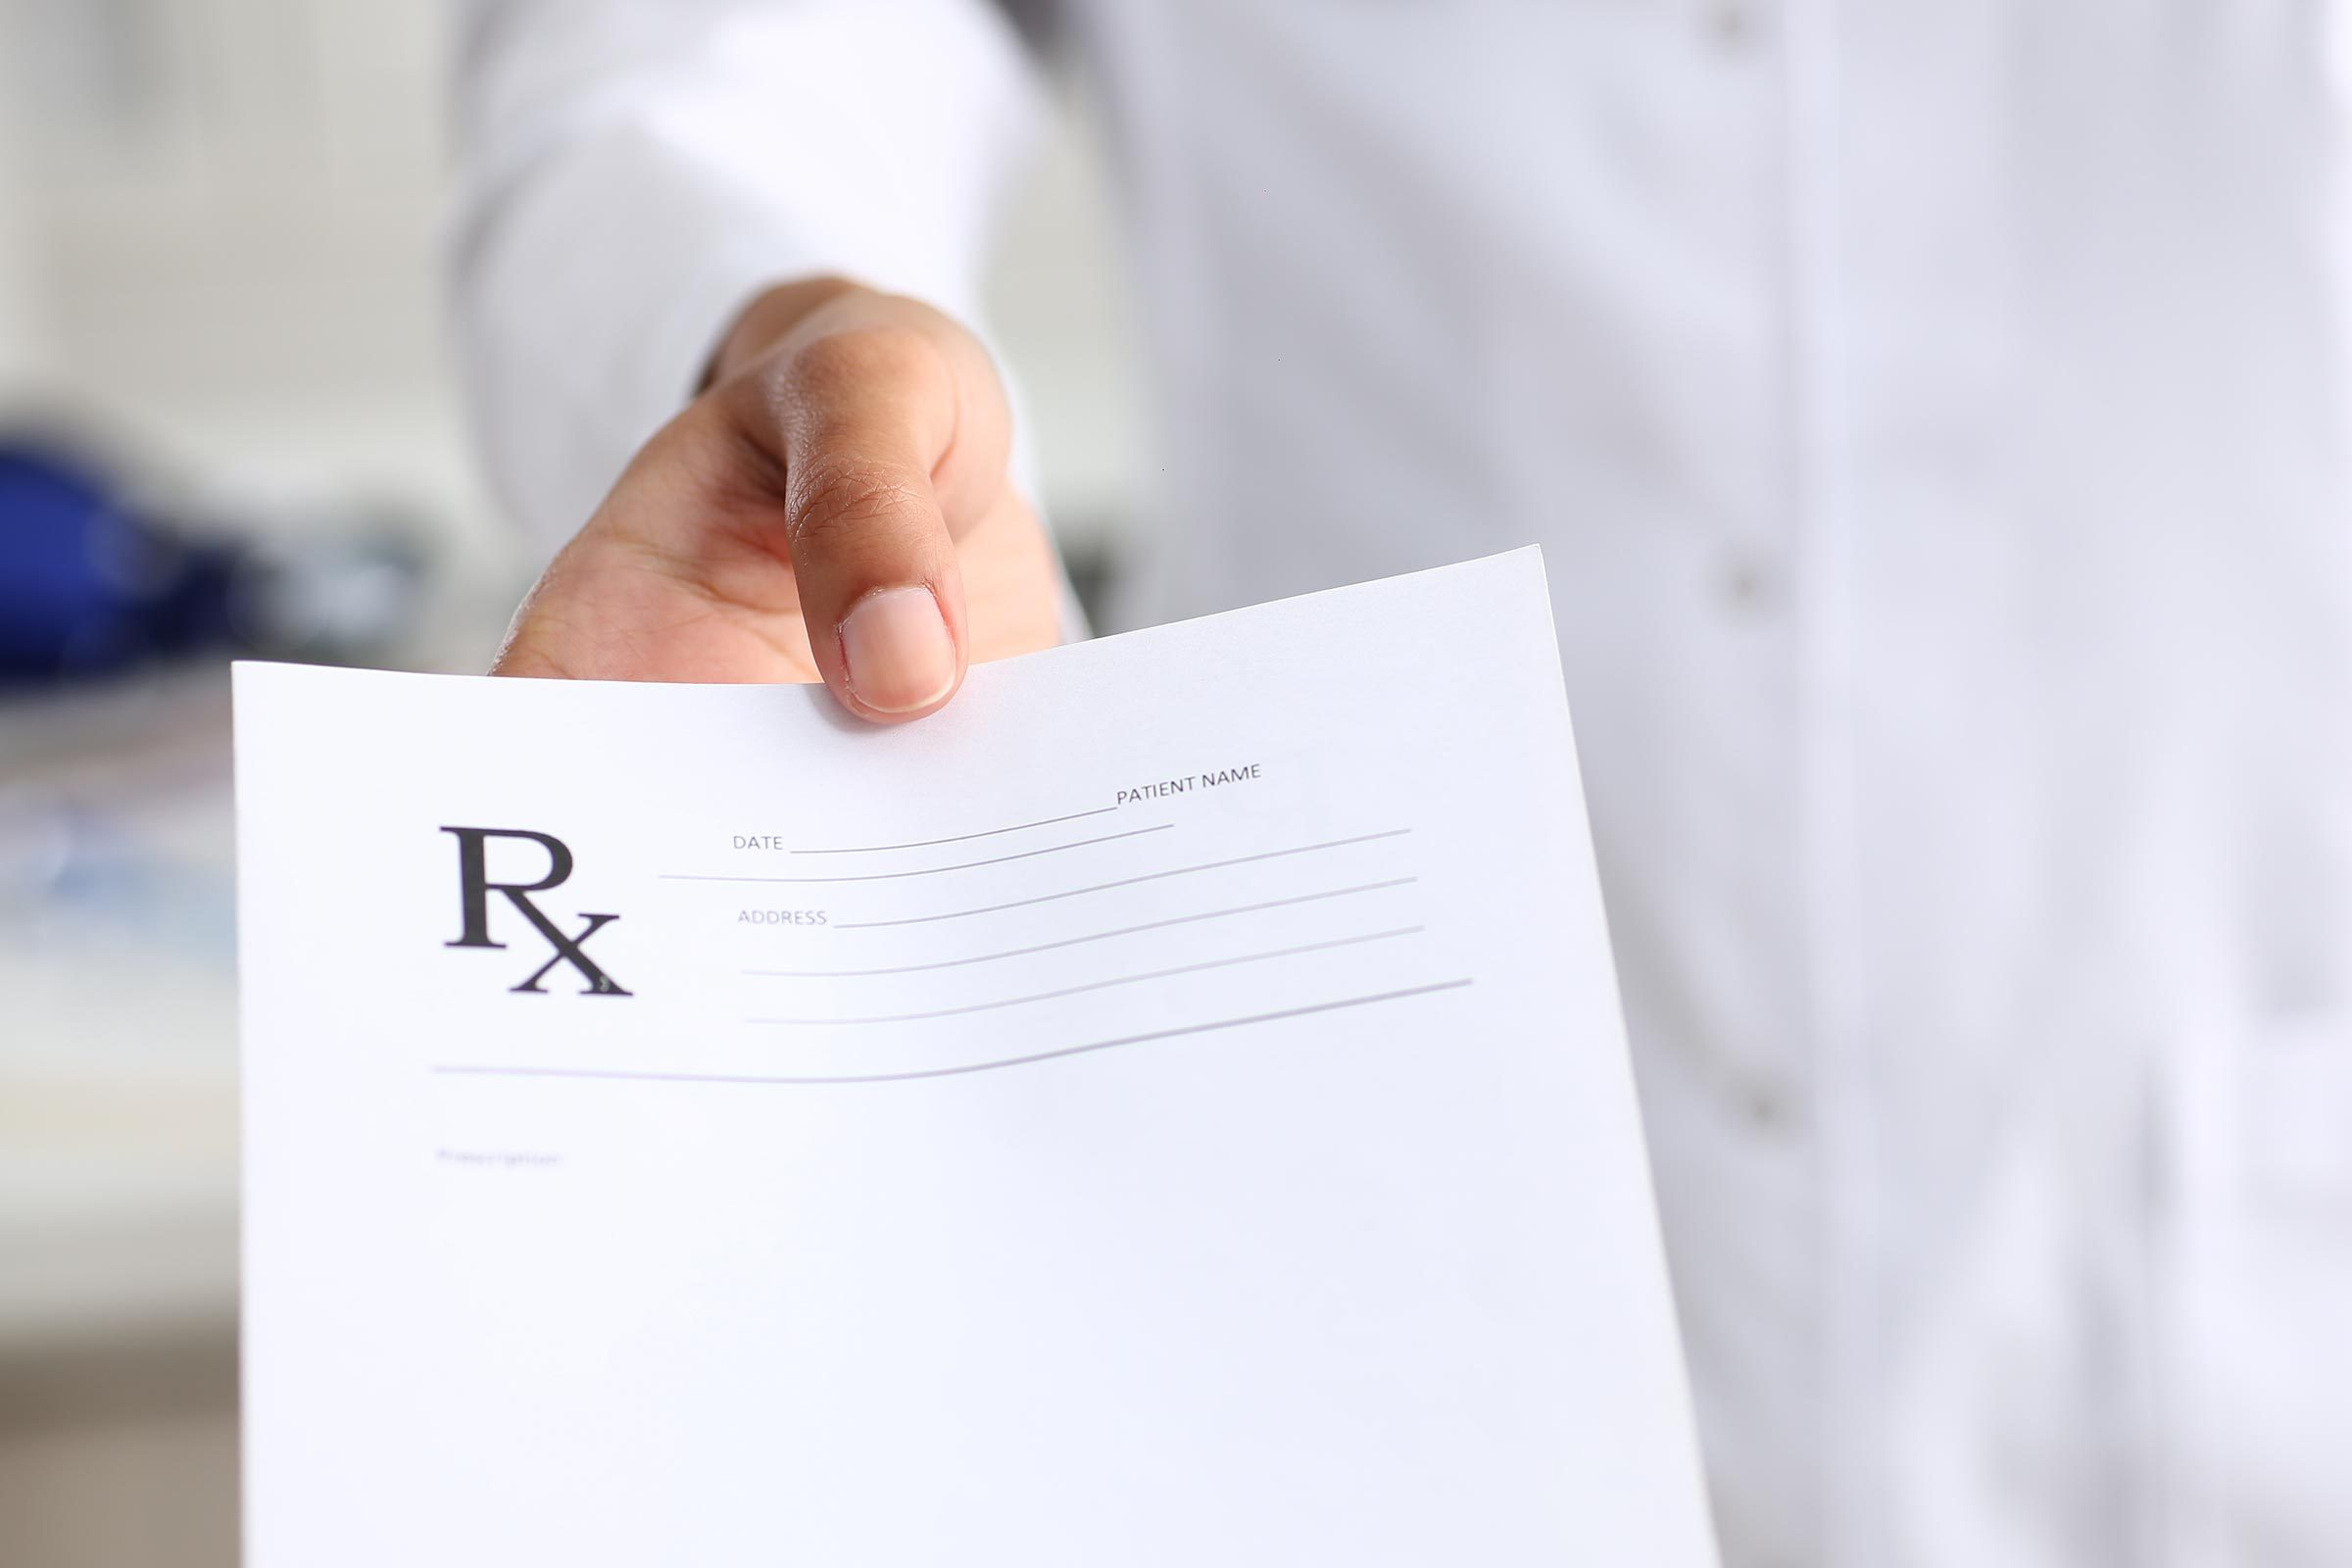 rx prescription pad doctor